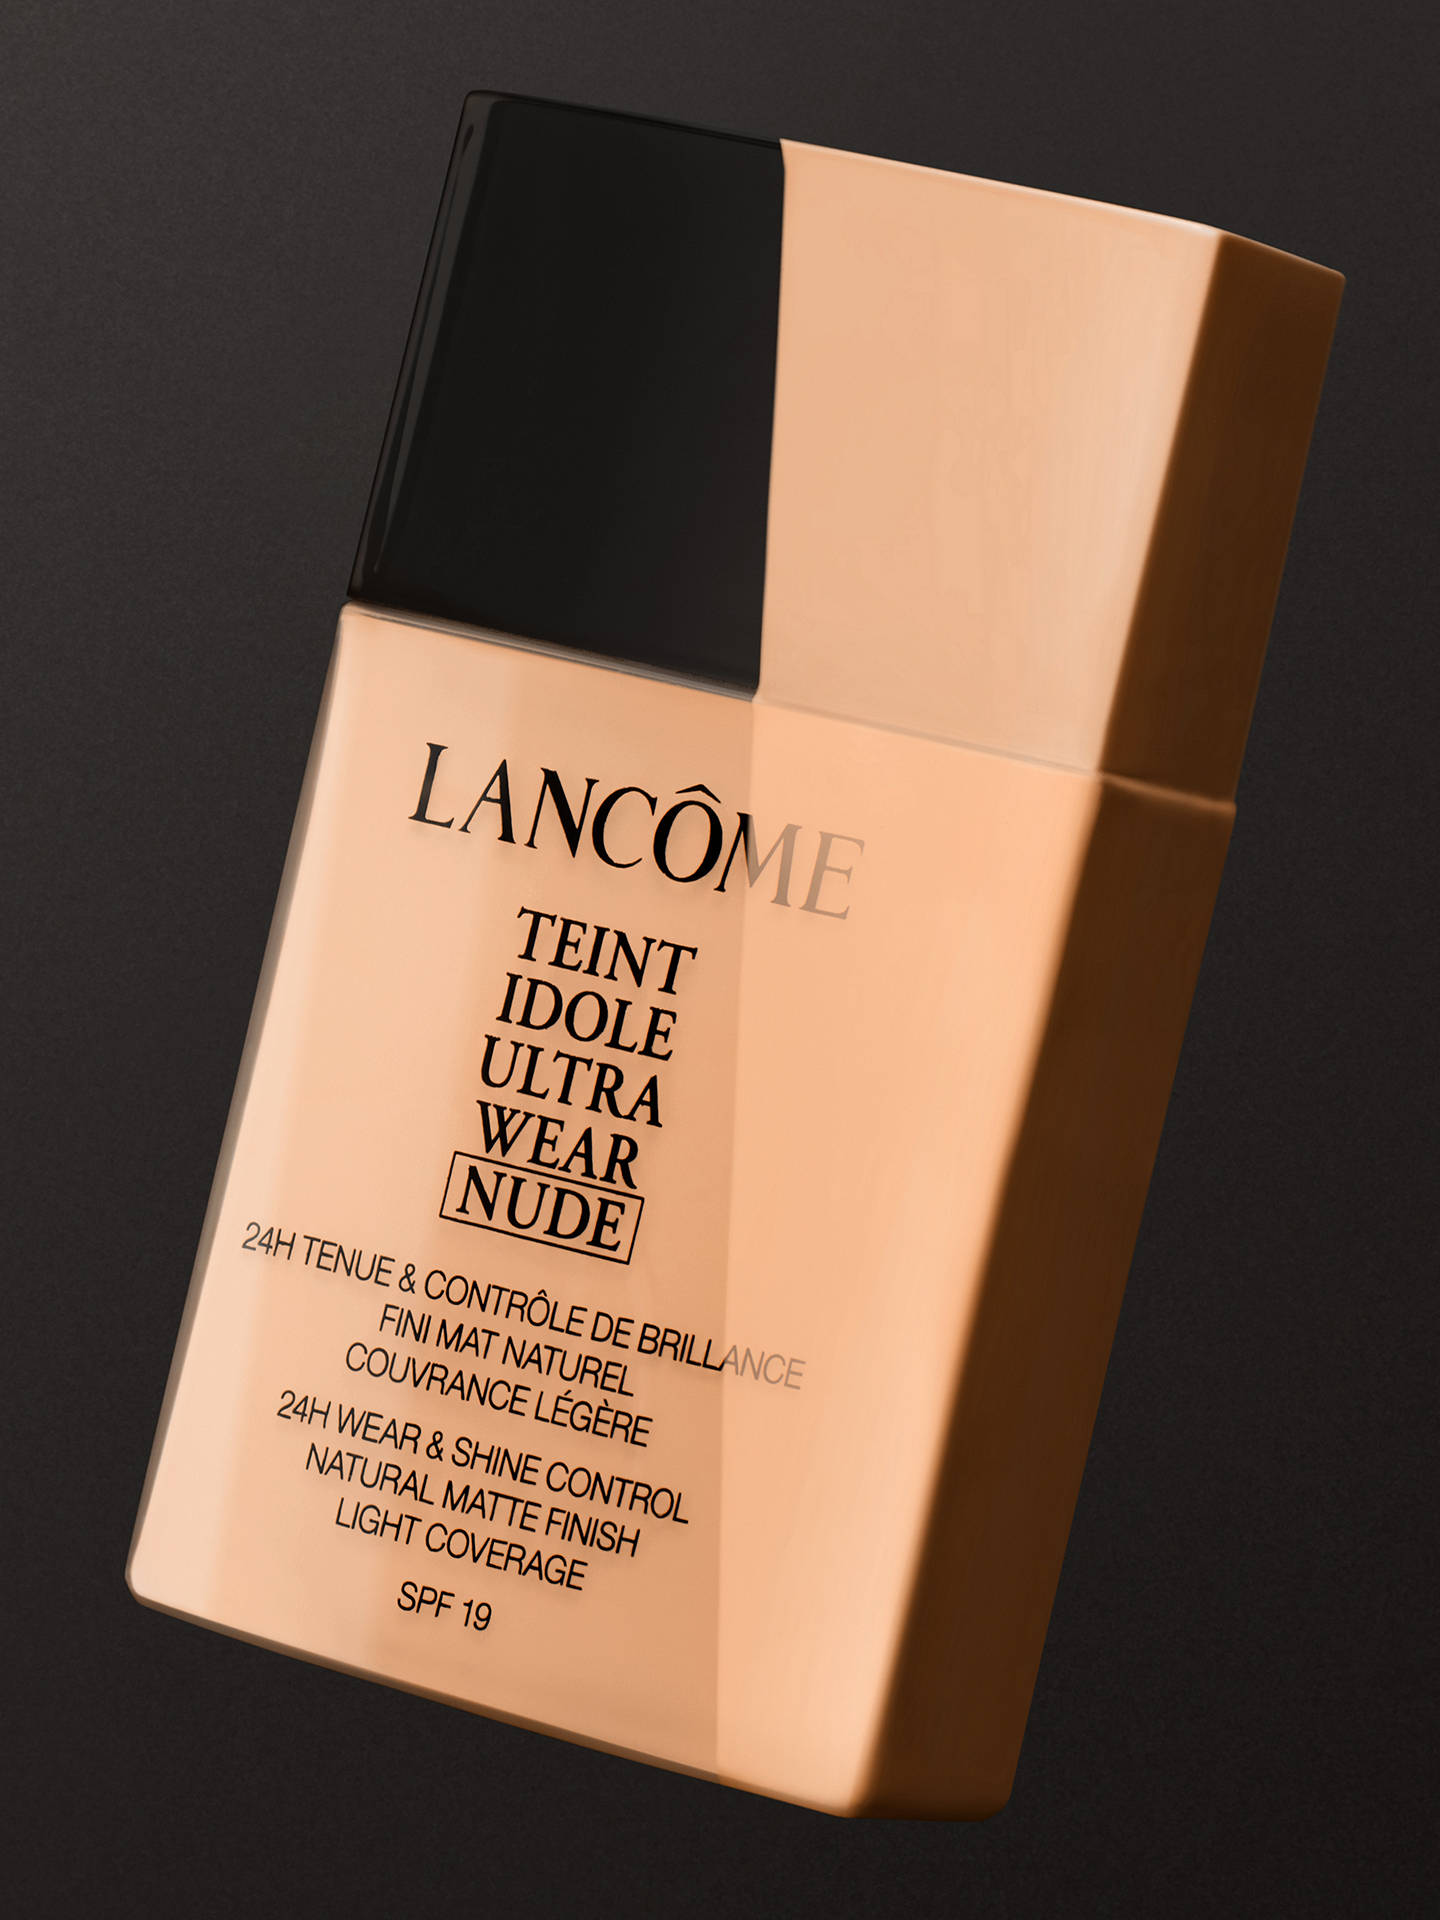 BuyLancôme Teint Idole Ultra Wear Nude Foundation SPF 19, 010 Beige Porcelaine Online at johnlewis.com